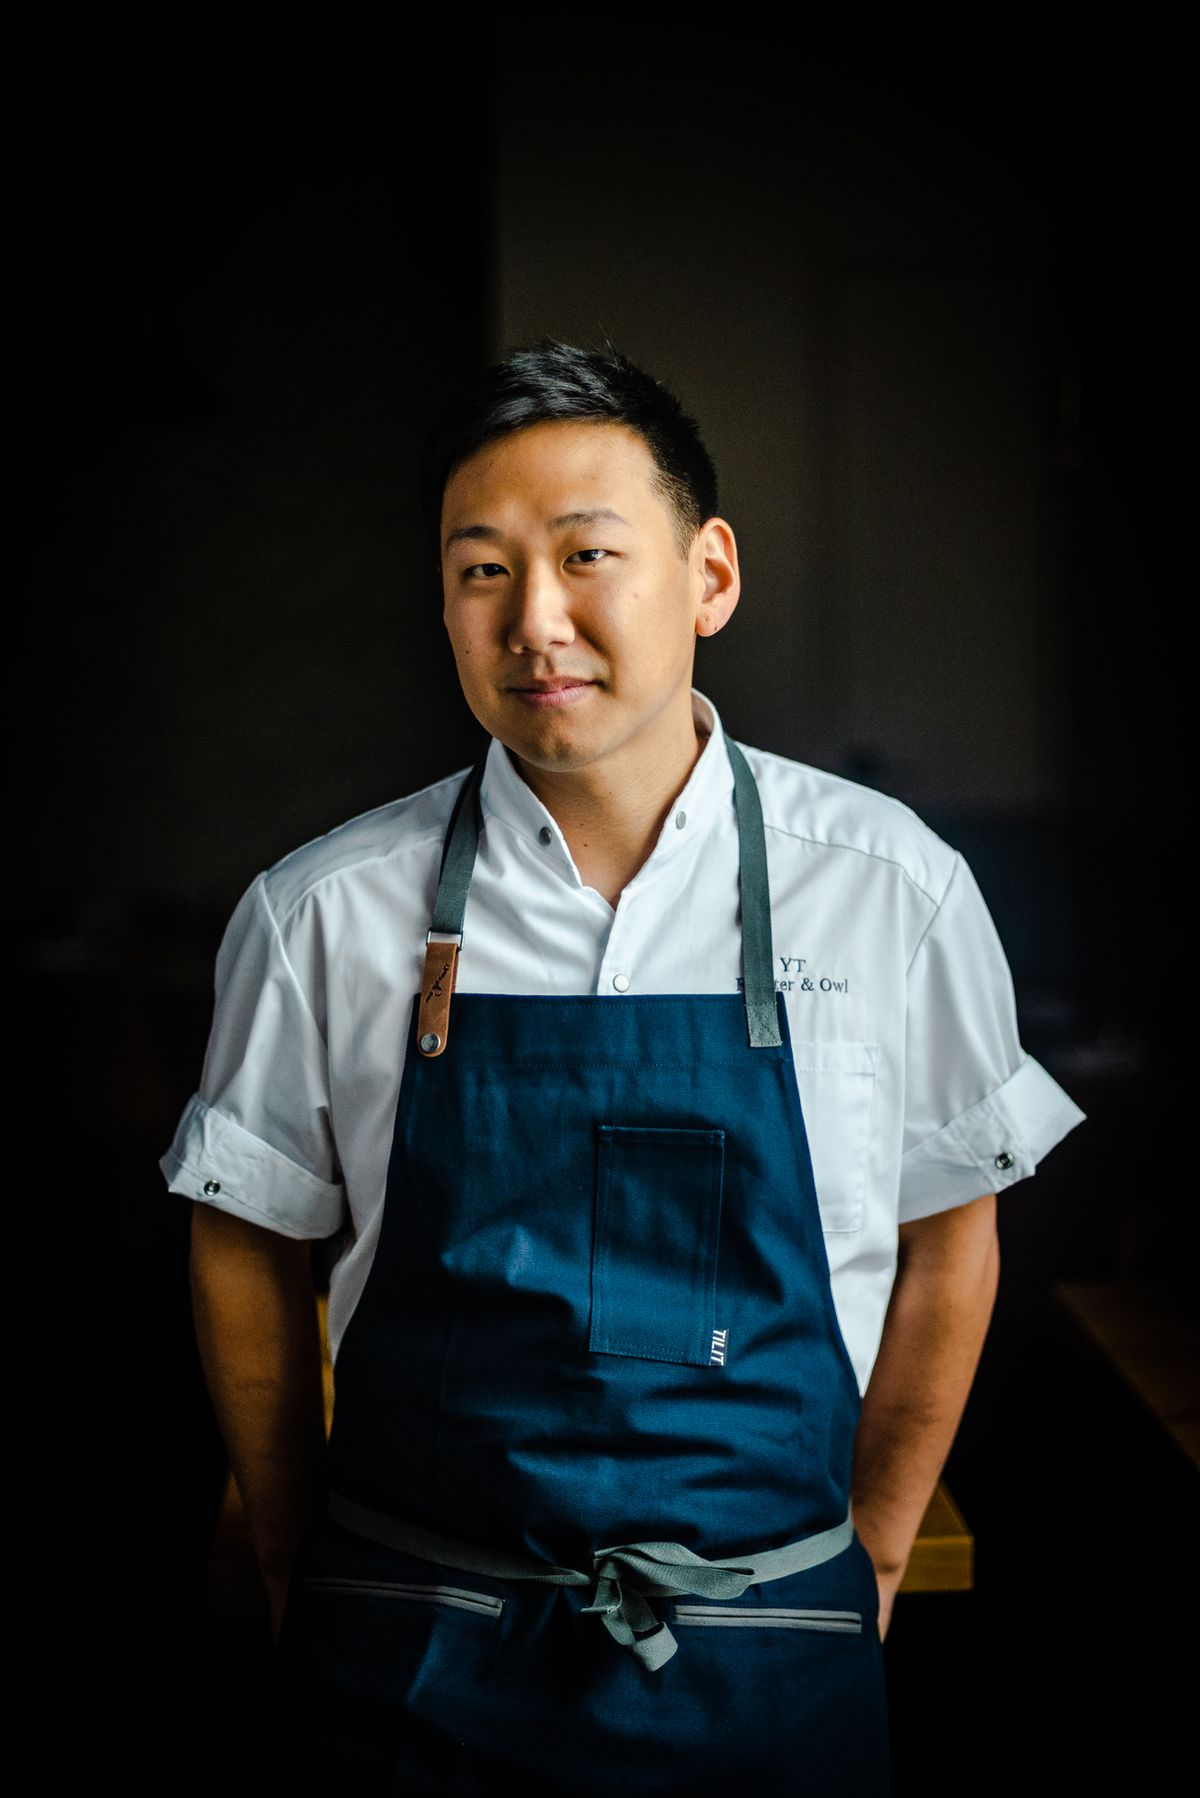 Rooster & Owl executive chef Yuan Tang.